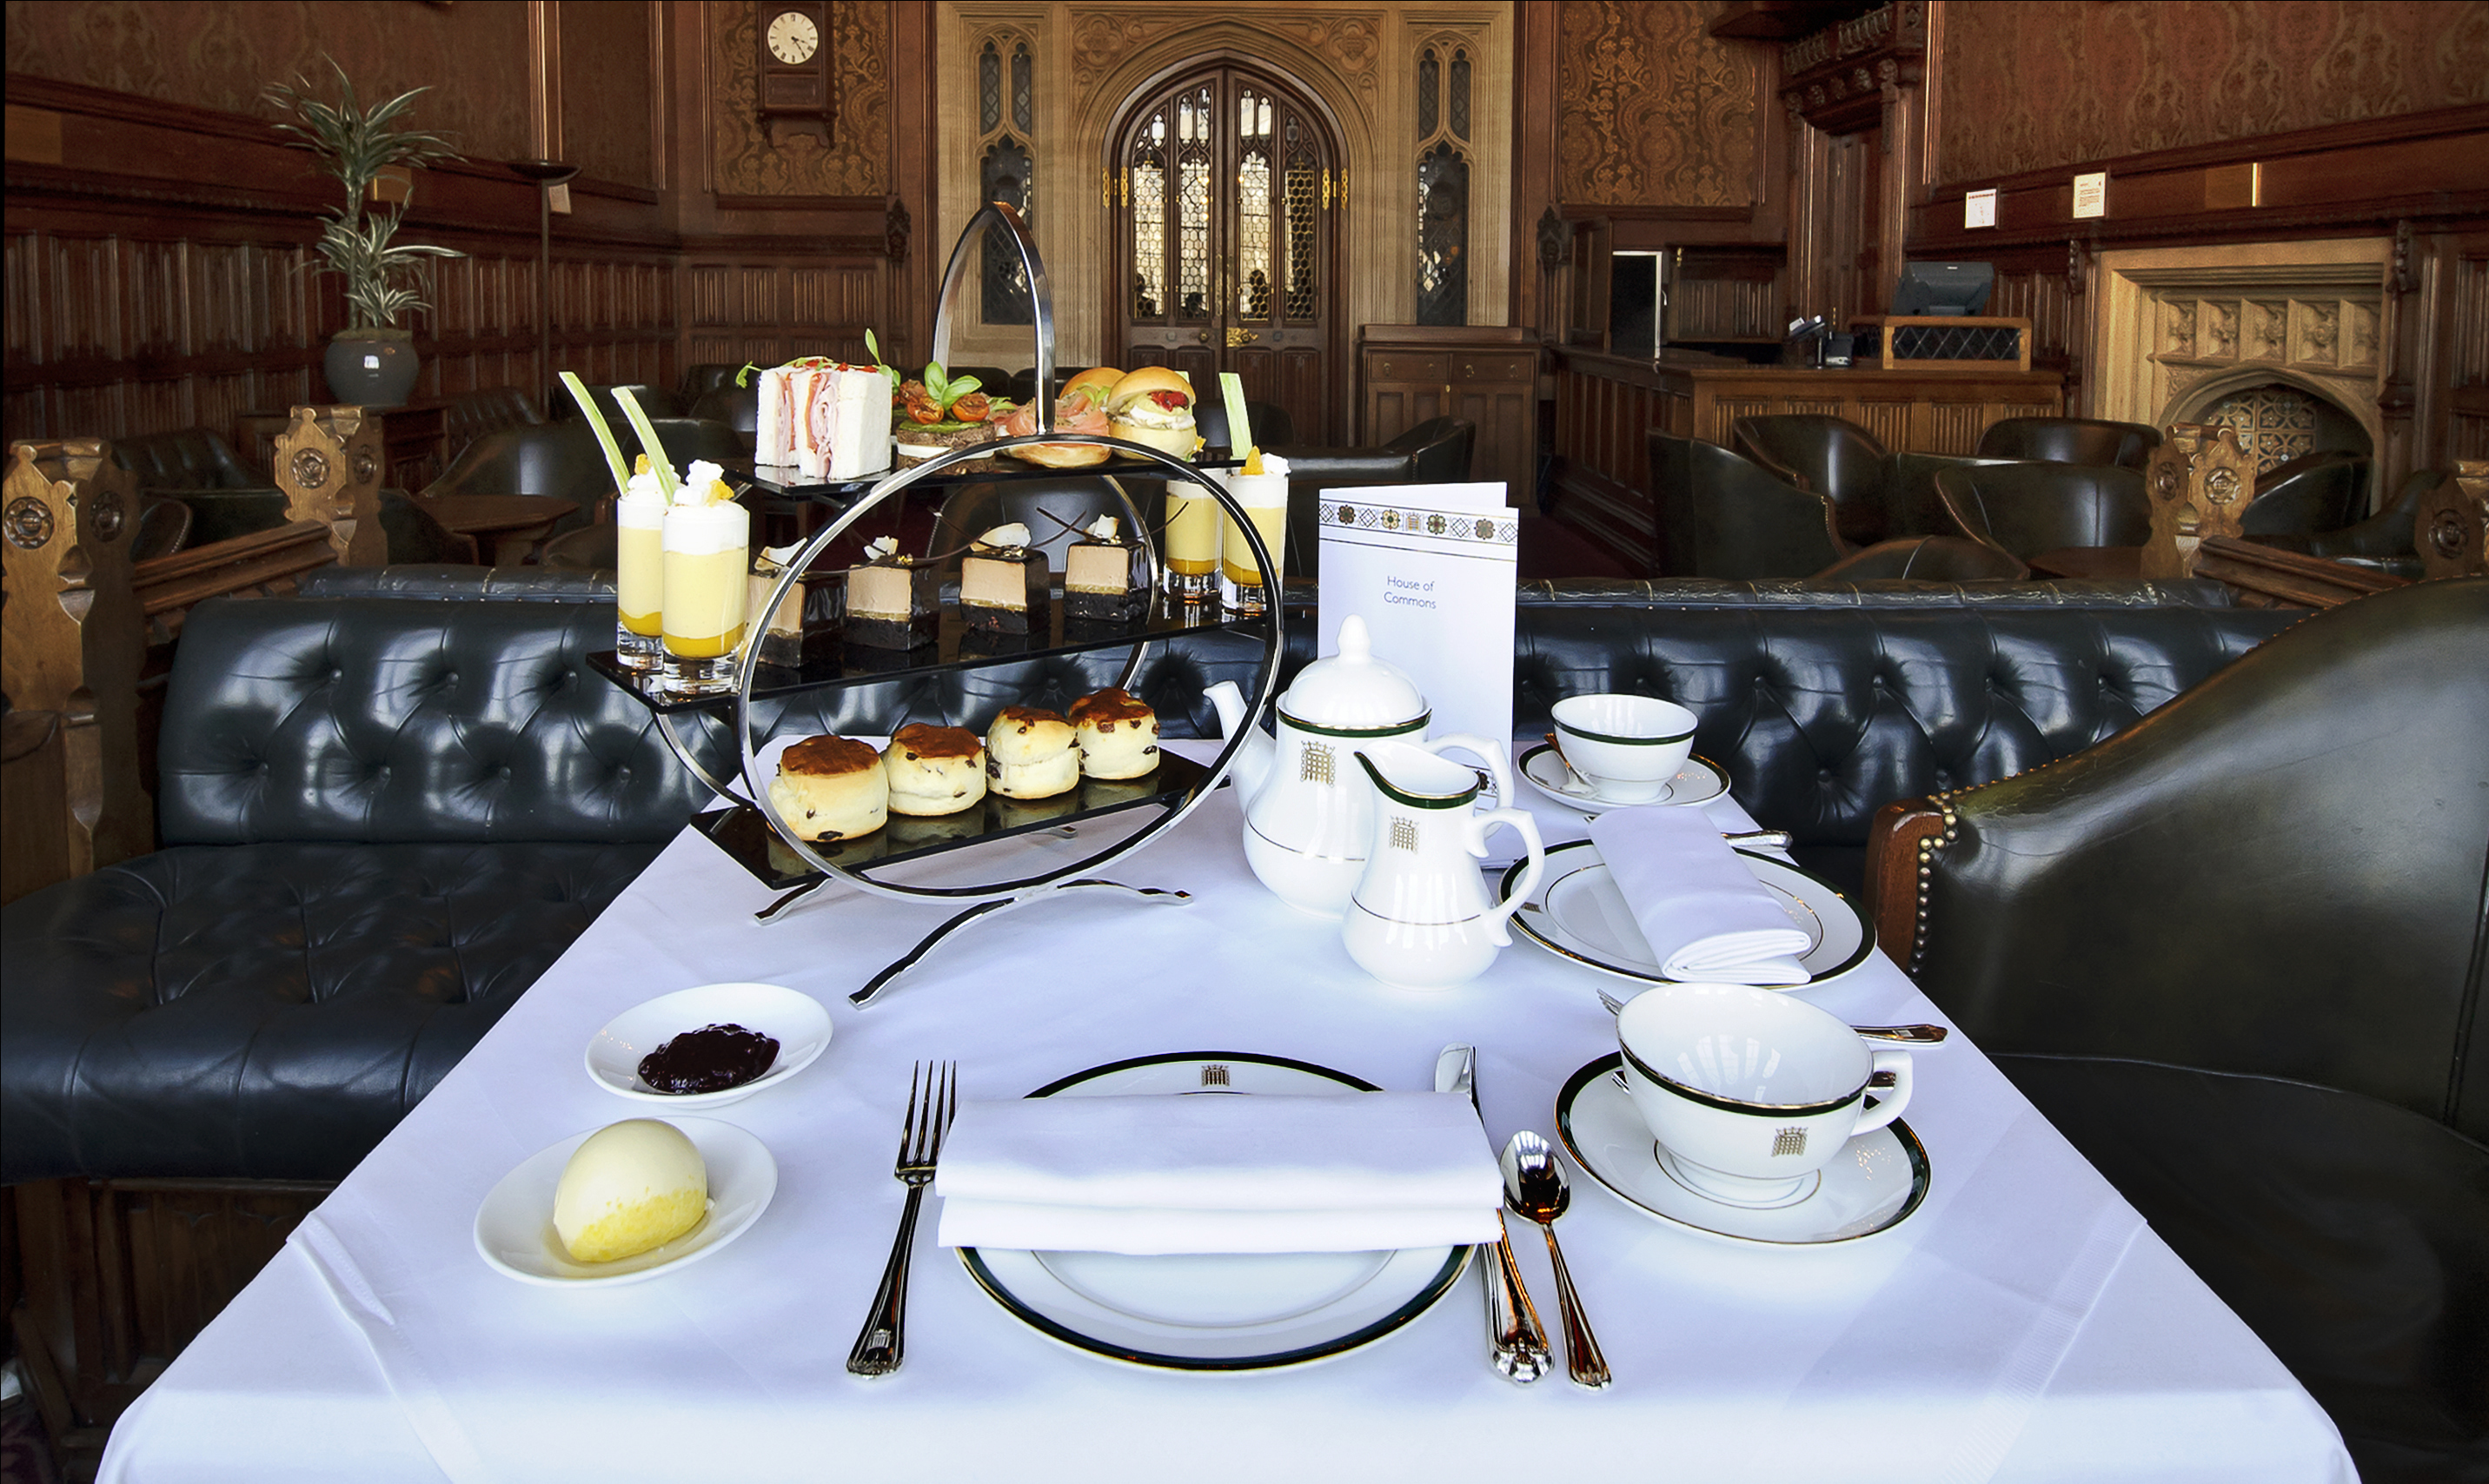 Have afternoon tea at the Houses of Parliament